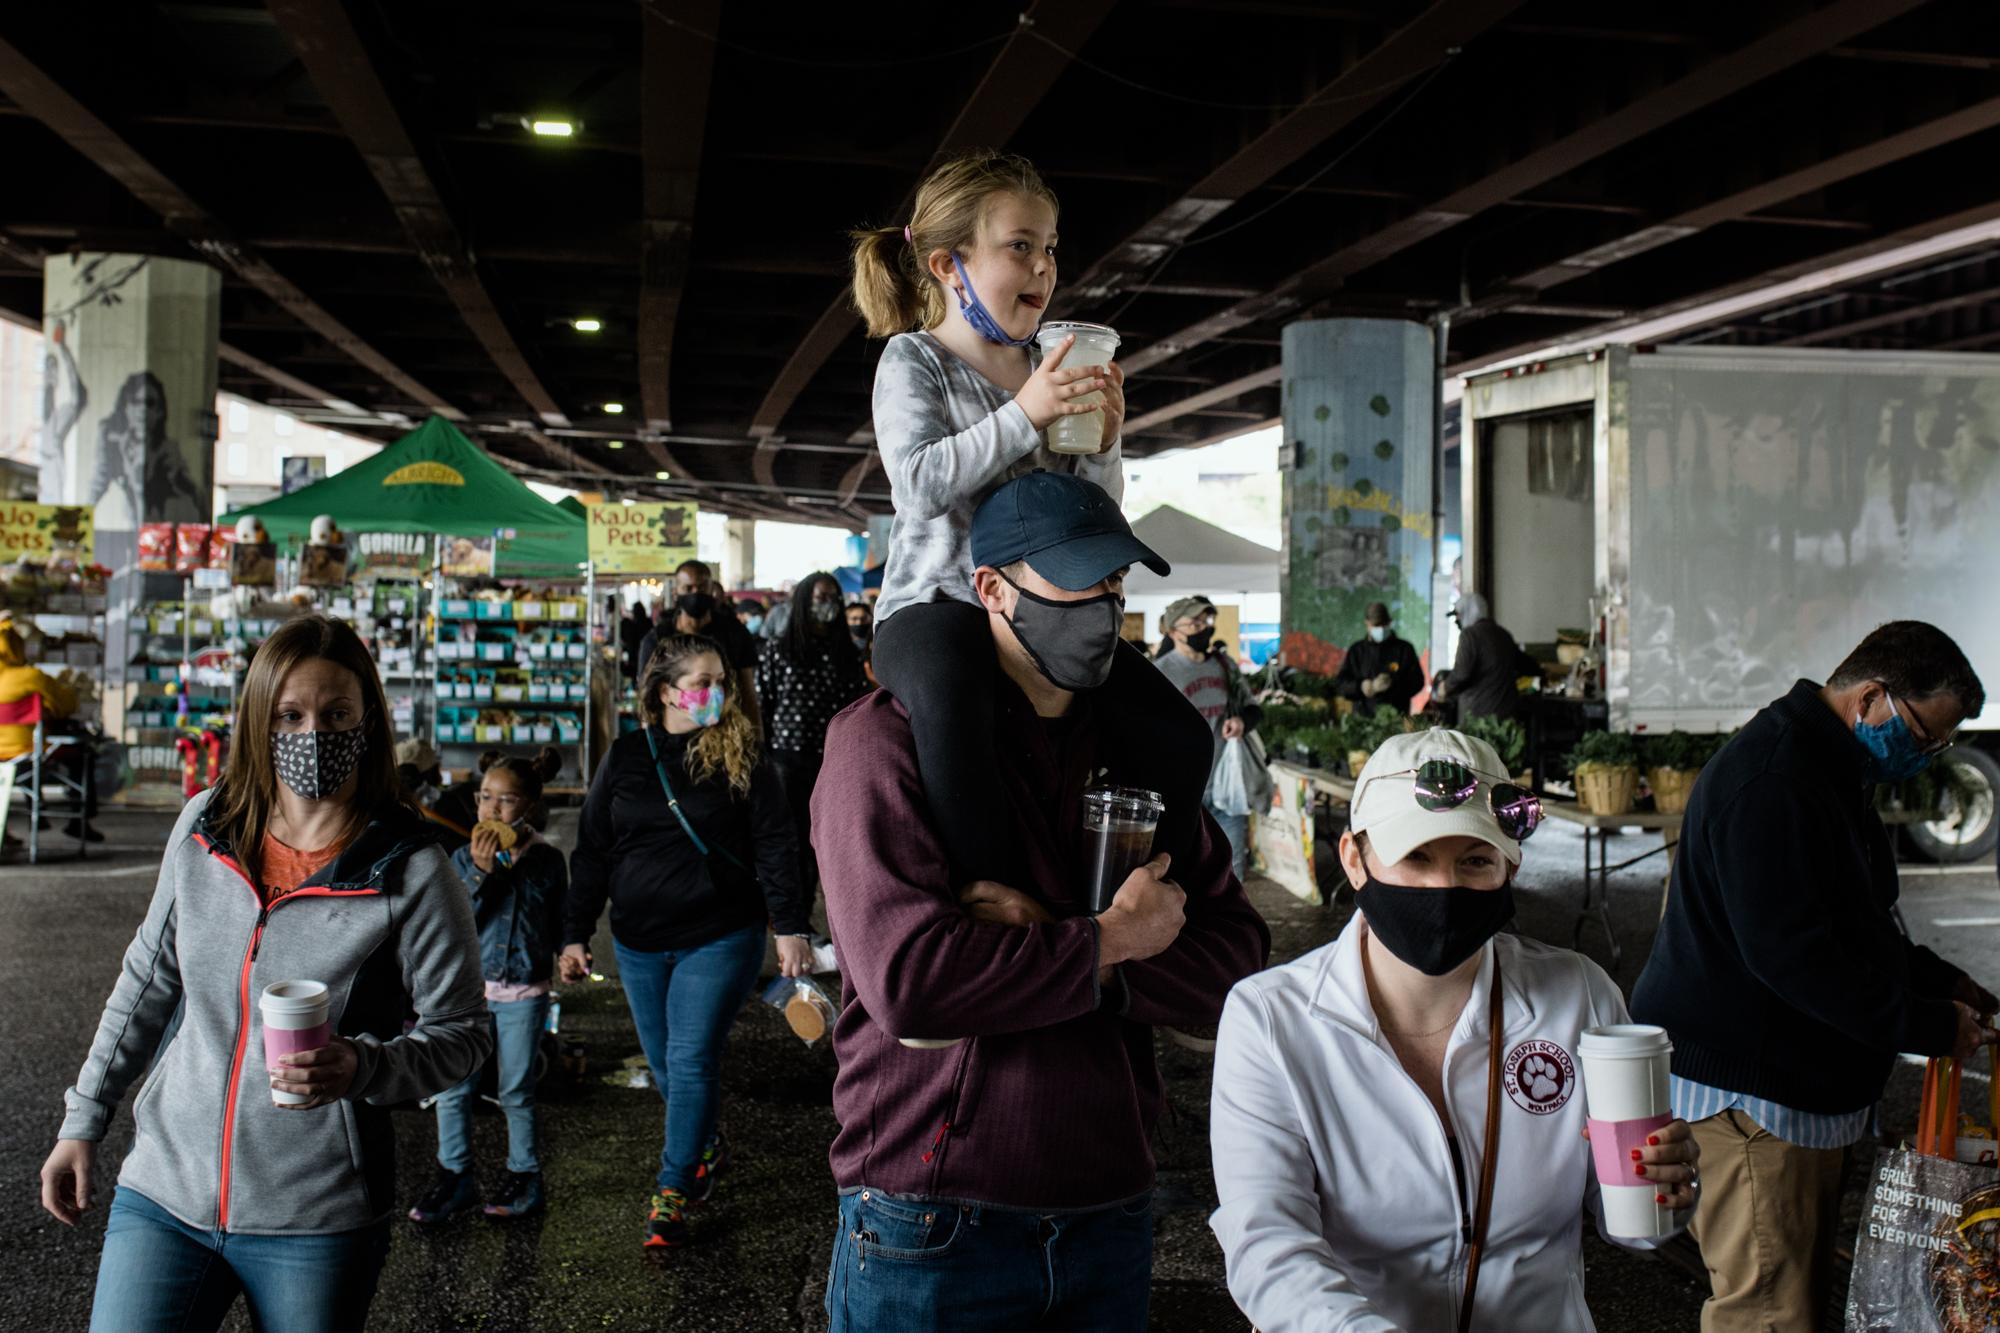 BALTIMORE, MD - APRIL 25, 2021: Shoppers visit the Baltimore Farmers Market & Bazaar under the Jones Falls Expressway Bridge in Baltimore, Maryland on April 25, 2021. Last year, the farmer's market opened two months later than usual, with limited numbers of vendors. Customers were allowed in one at a time. This year, the farmer's market reopened in April for the season without any restrictions.